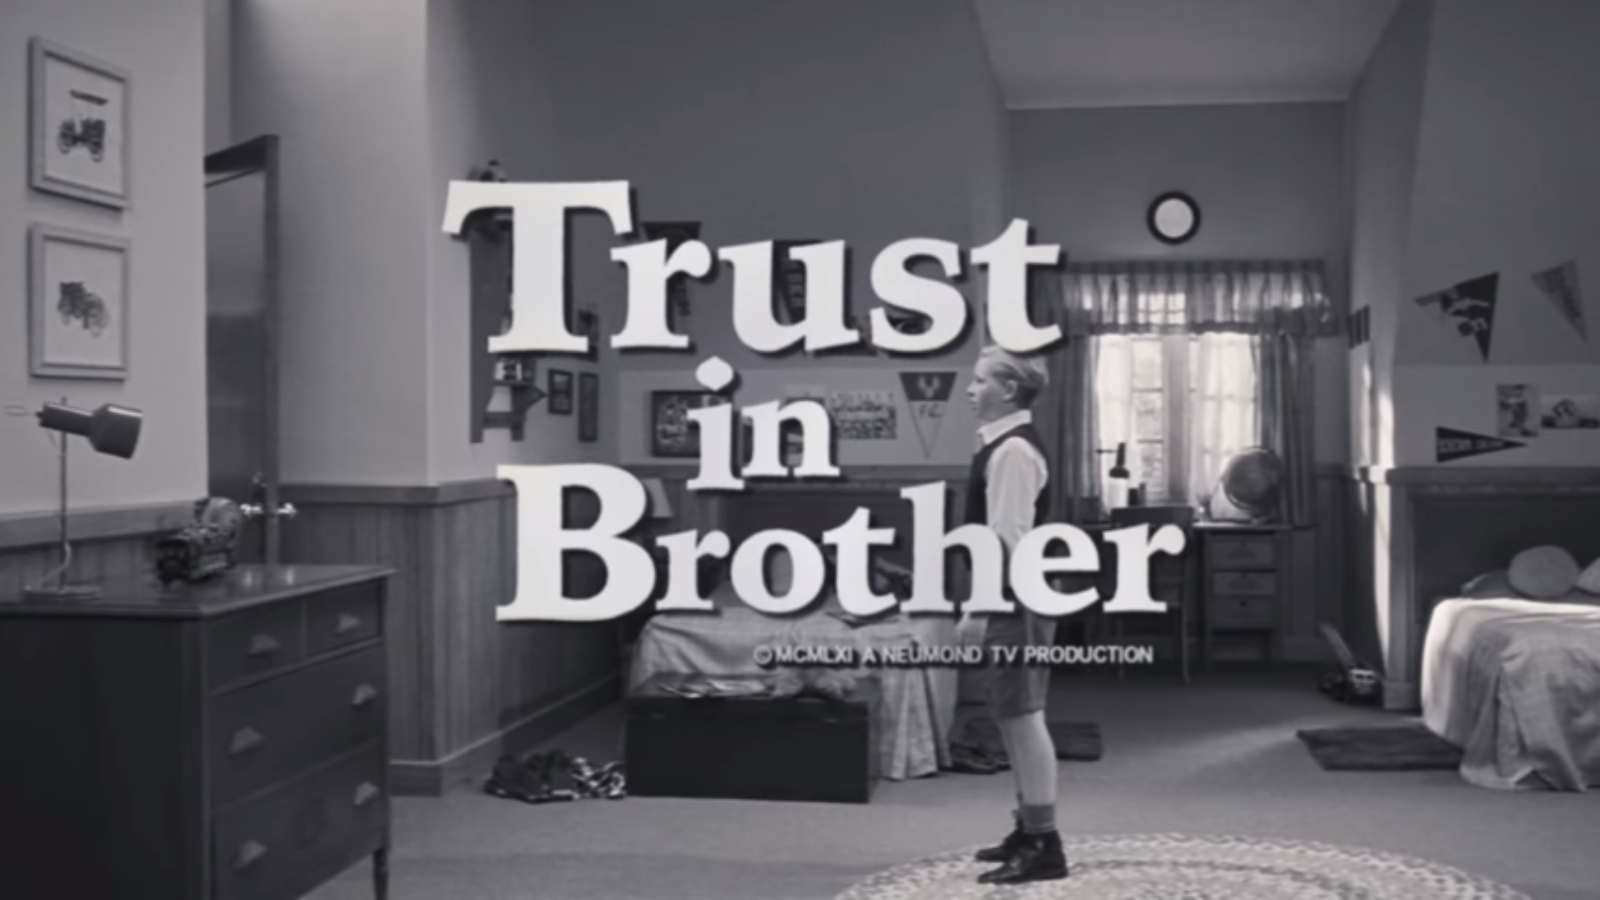 Trust in brother